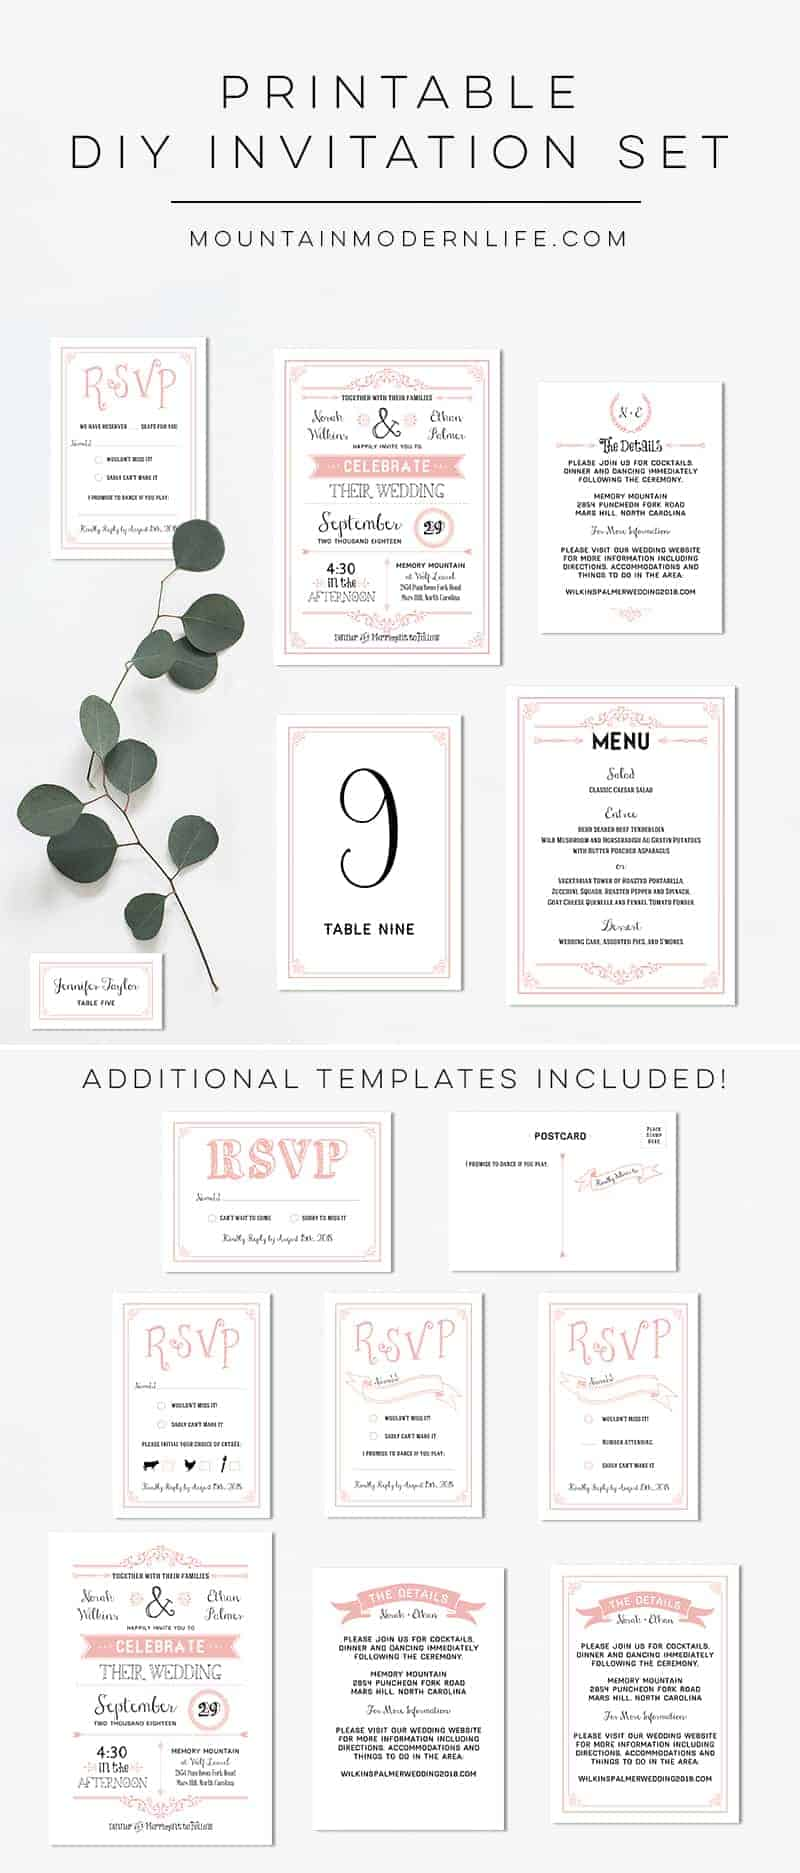 Planning a rustic or vintage-inspired wedding? Instantly download this Printable Blush Pink Wedding Invitation Set and print as many copies as you need!